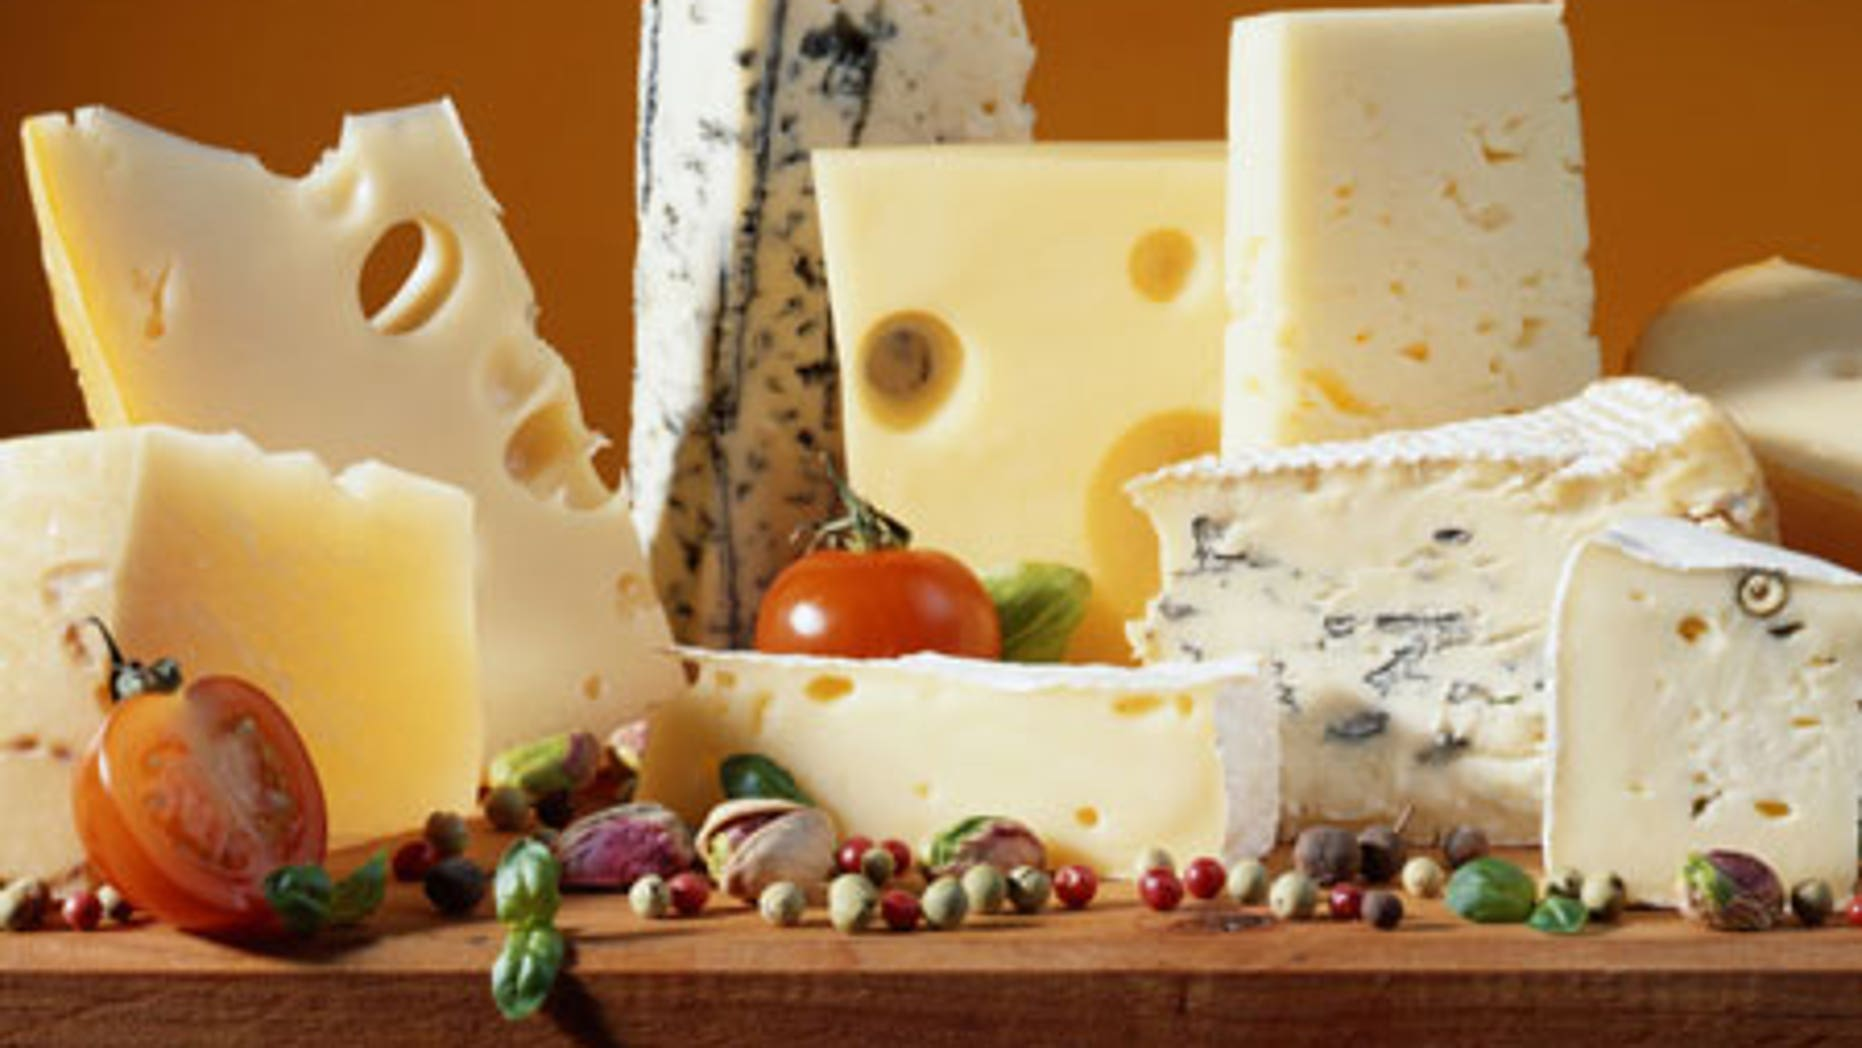 According to the Cleveland Clinic, some soft cheeses can be a good source of probiotics, which research shows can increase fertility.